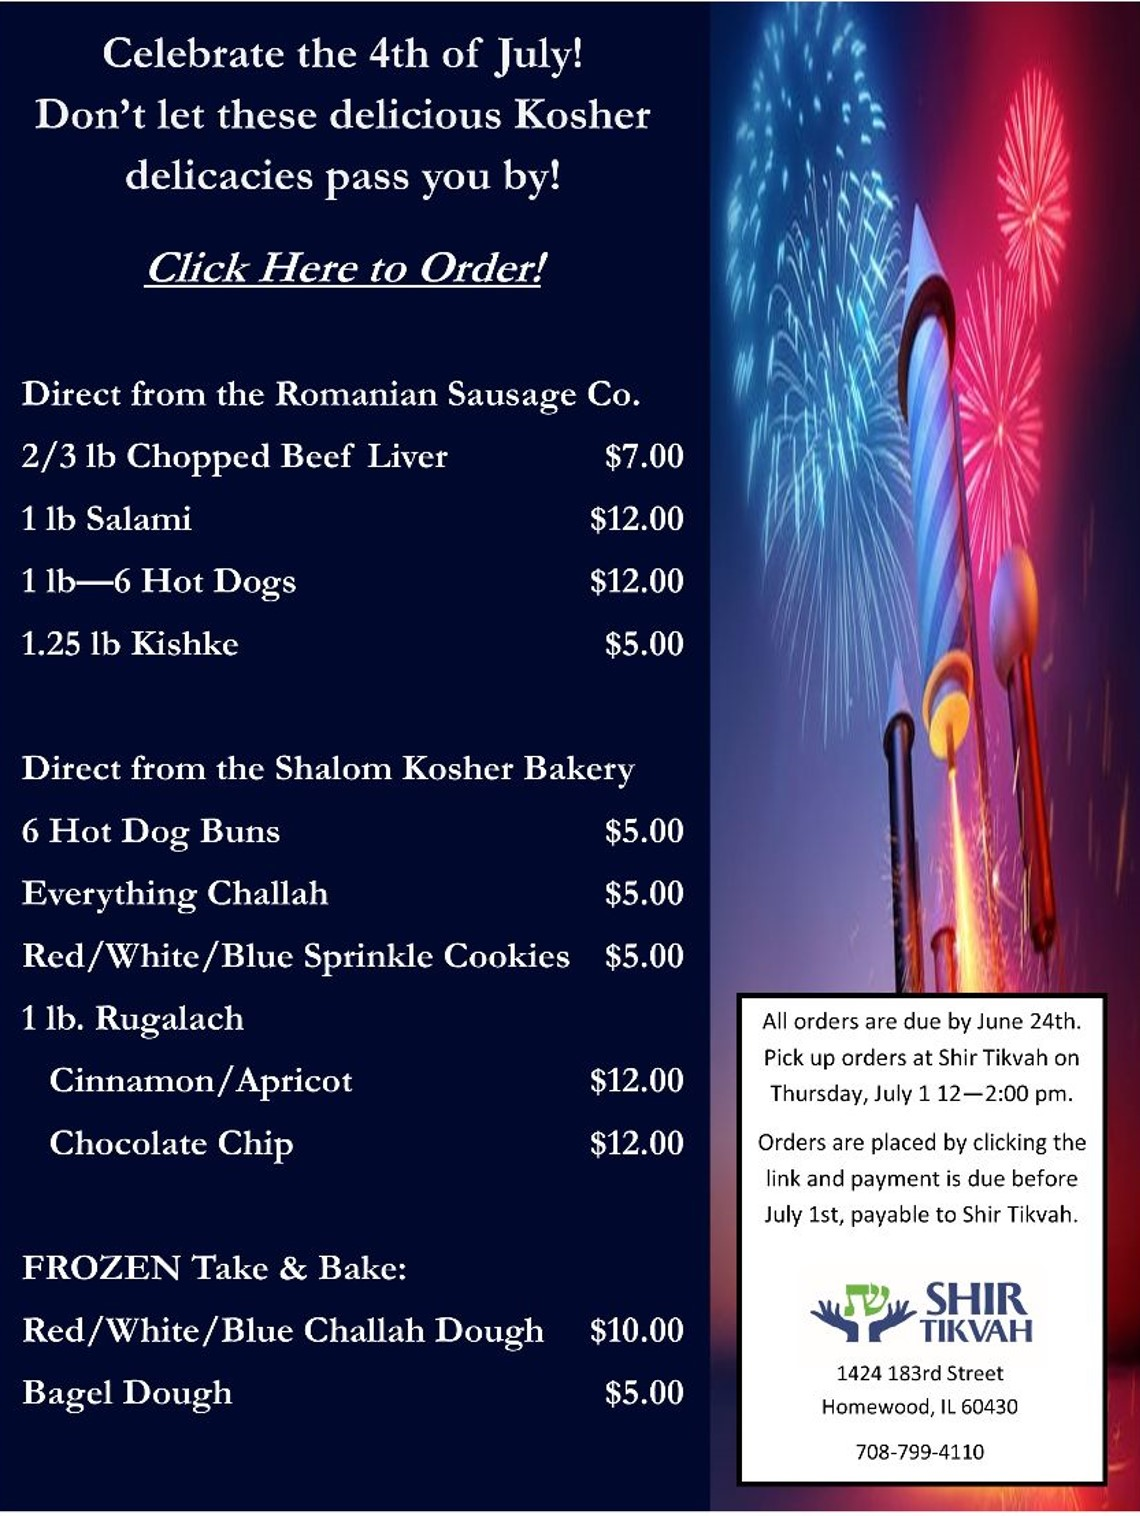 CLICK ON IMAGE TO PLACE ORER. All orders are due by June 24.  Pick up orders at Shir Tikvah on Thursday, July 1 between 12-2PM.